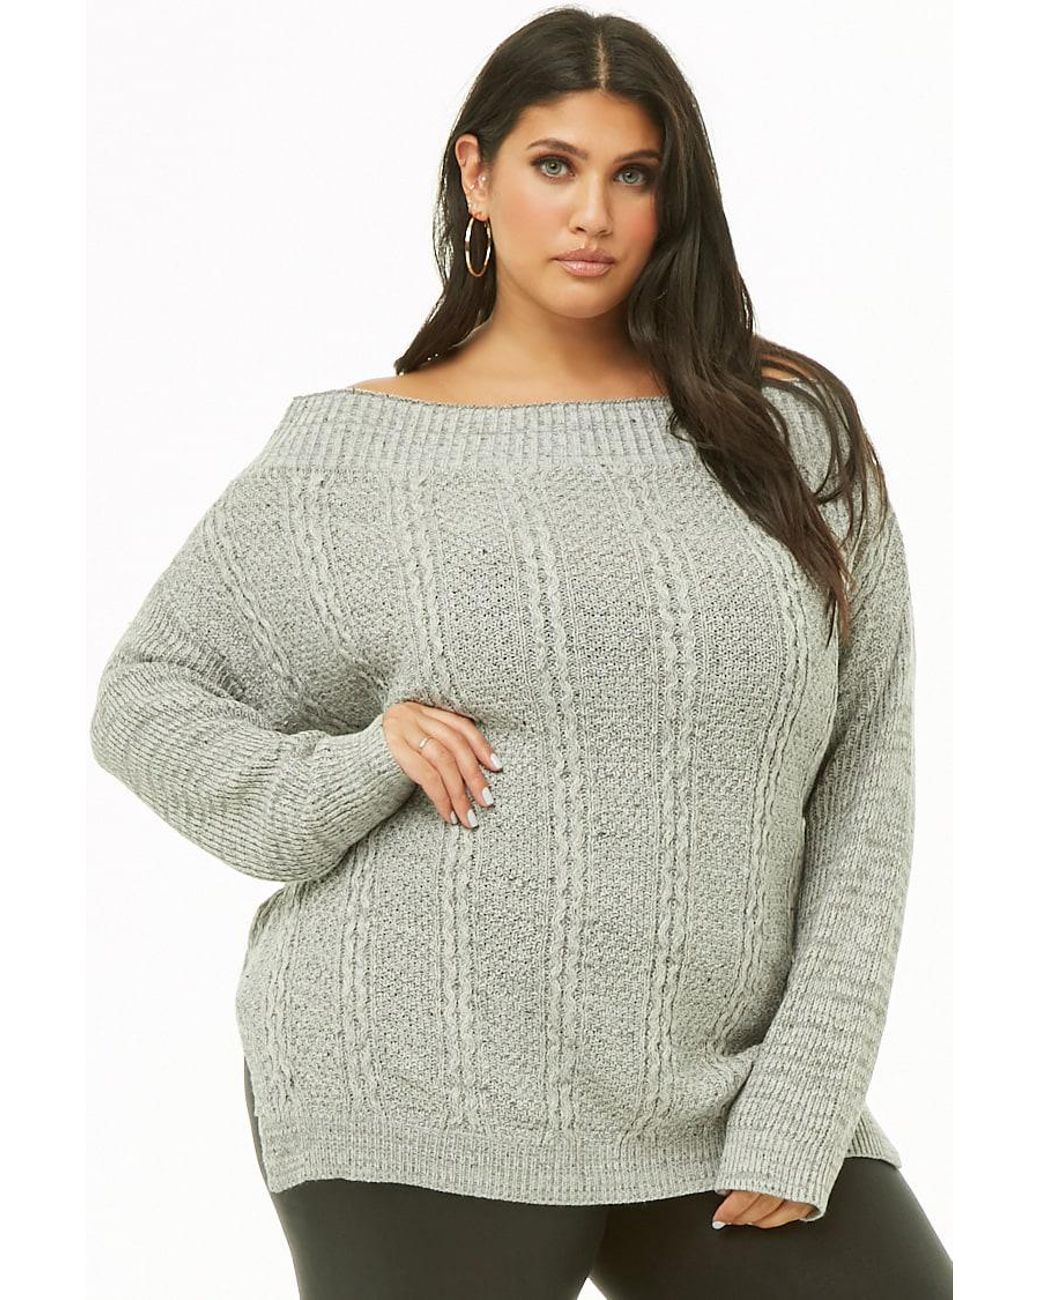 cc7f69f28 Forever 21. Gray Women s Plus Size Off-the-shoulder Cable-knit Jumper Jumper